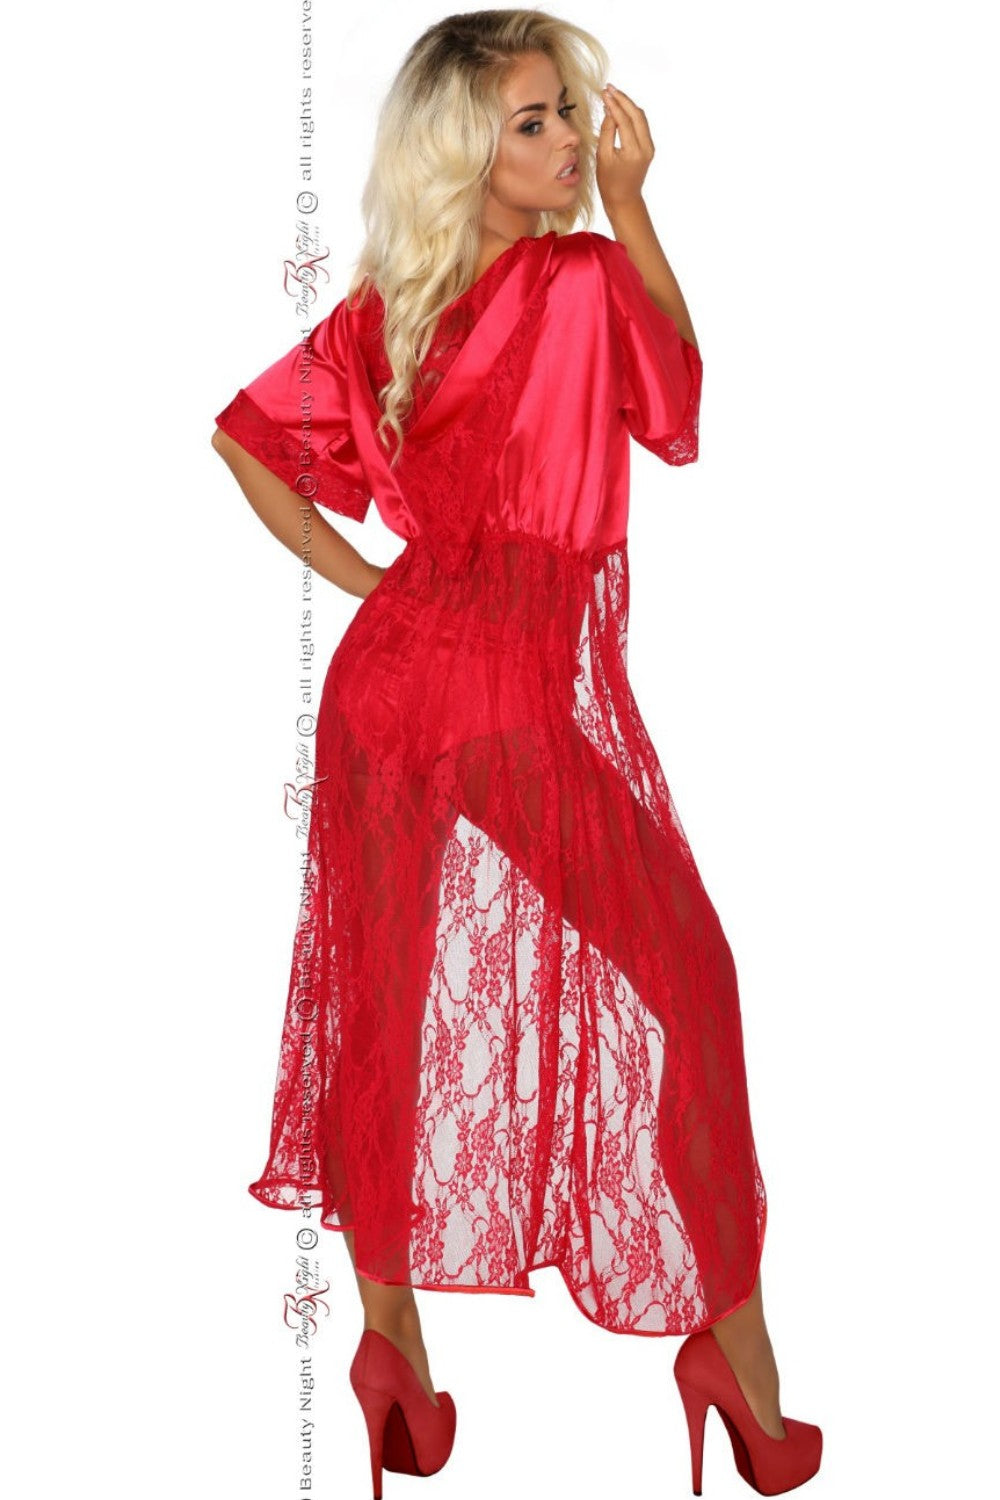 c602b53298 Beauty Night Electra Dressing Gown Set Red - Naughty Dorothy